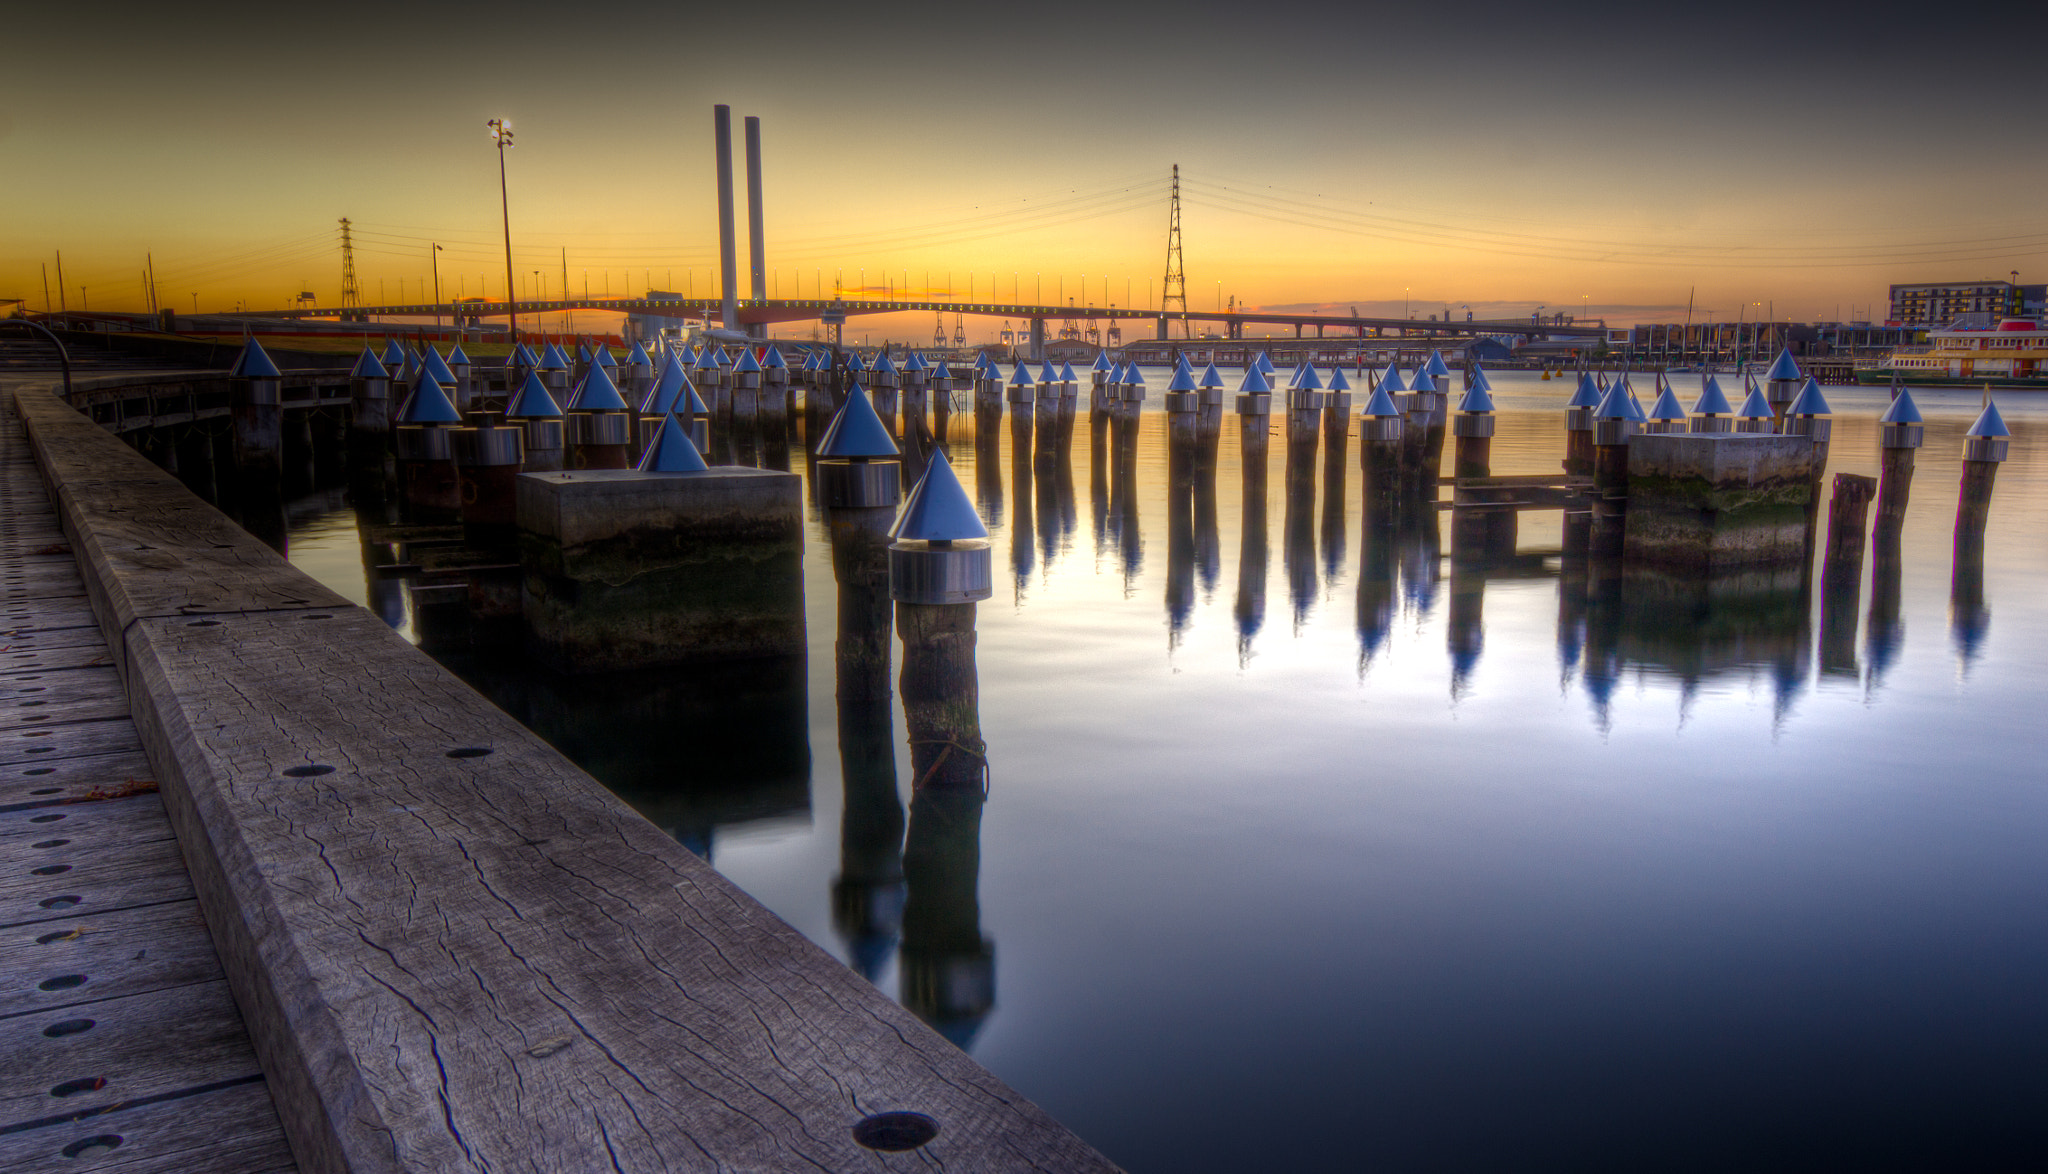 Photograph Docklands Sunset by Gavin Queit on 500px